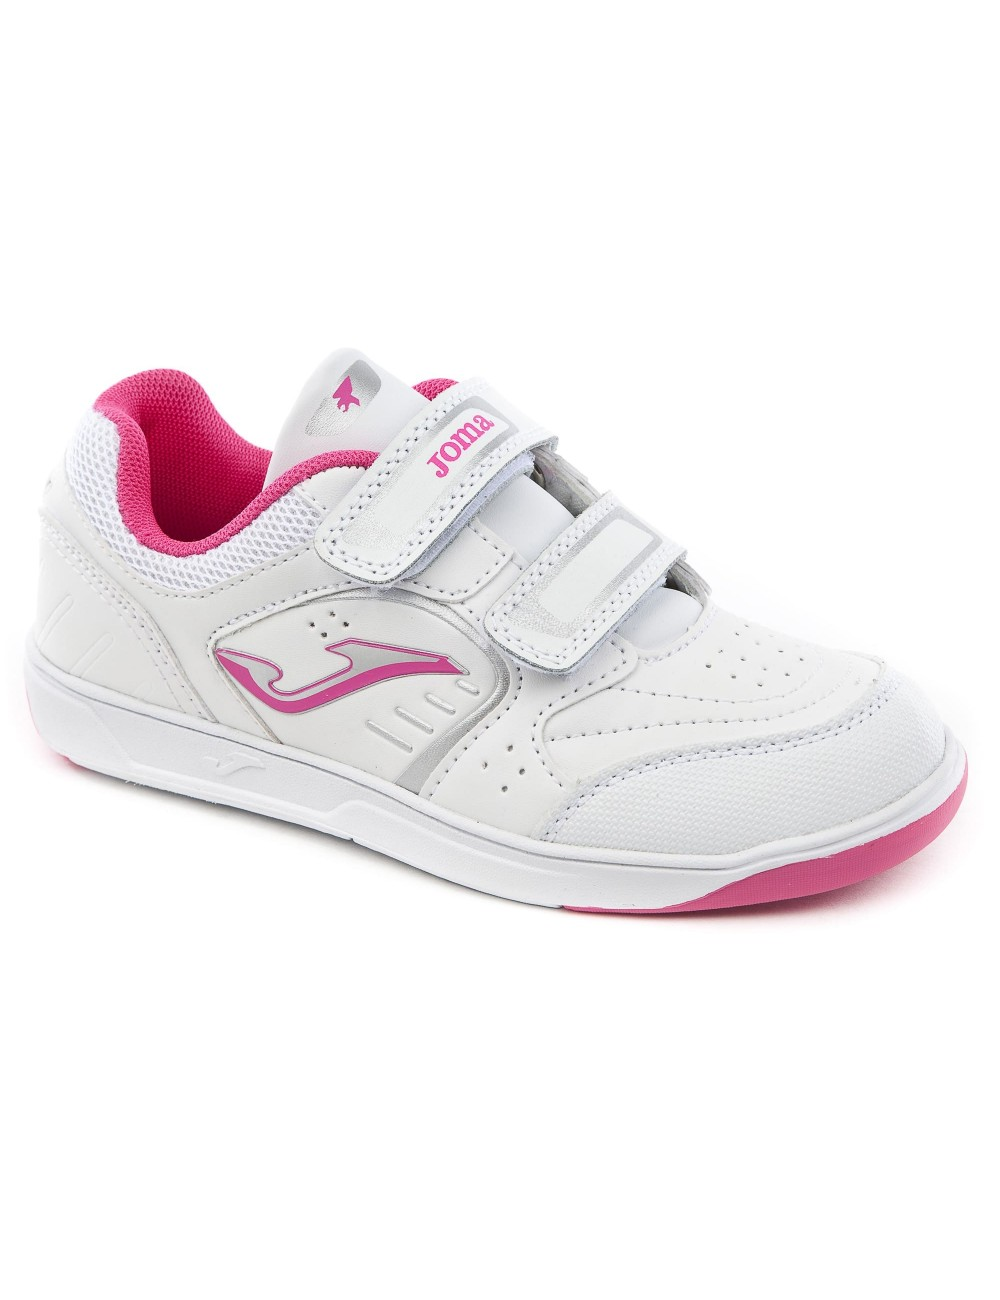 Zapatillas Joma Otto Jr 813 Blanco Rosa